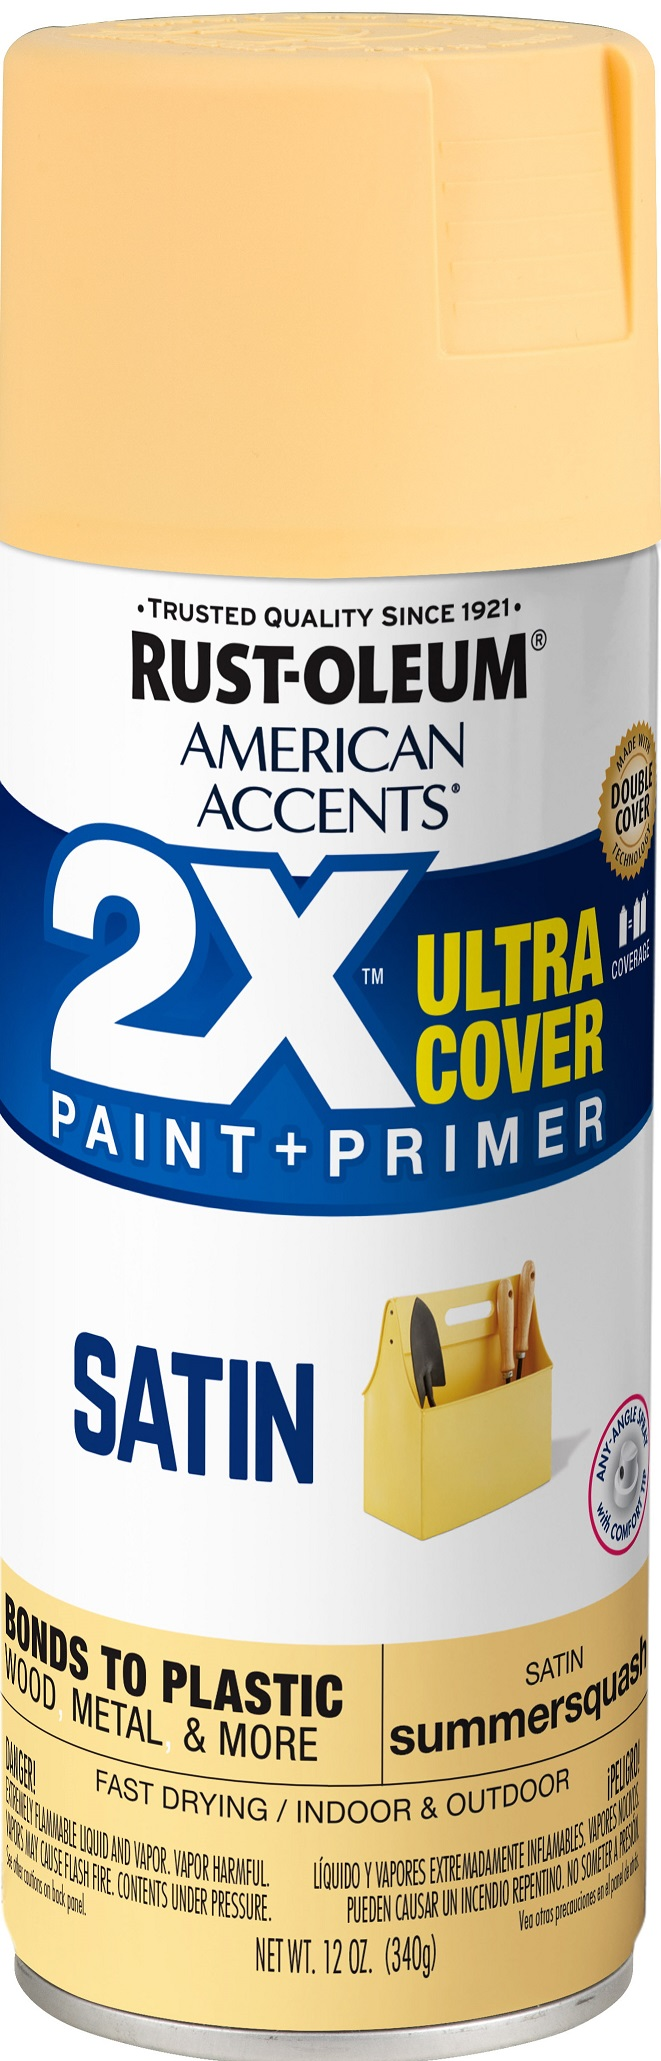 (3 Pack) Rust-Oleum American Accents Ultra Cover 2X Satin Summer Squash Spray Paint and Primer in 1, 12 oz